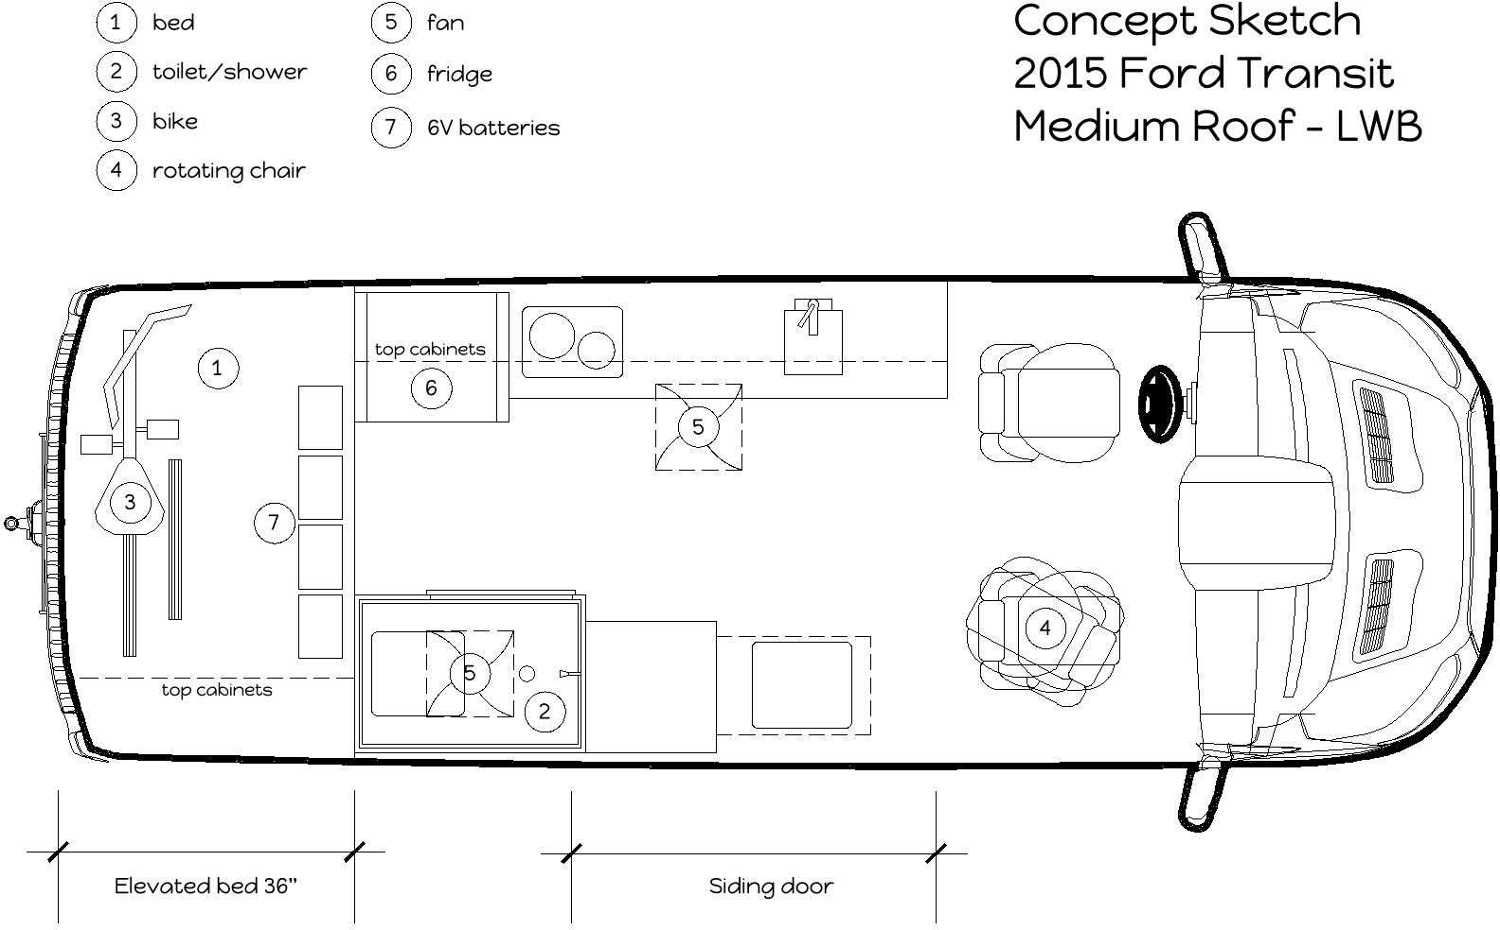 2015 Ford Transit Concept Layout Rv Conversion Van Conversions Rv 39 S Pinterest Ford